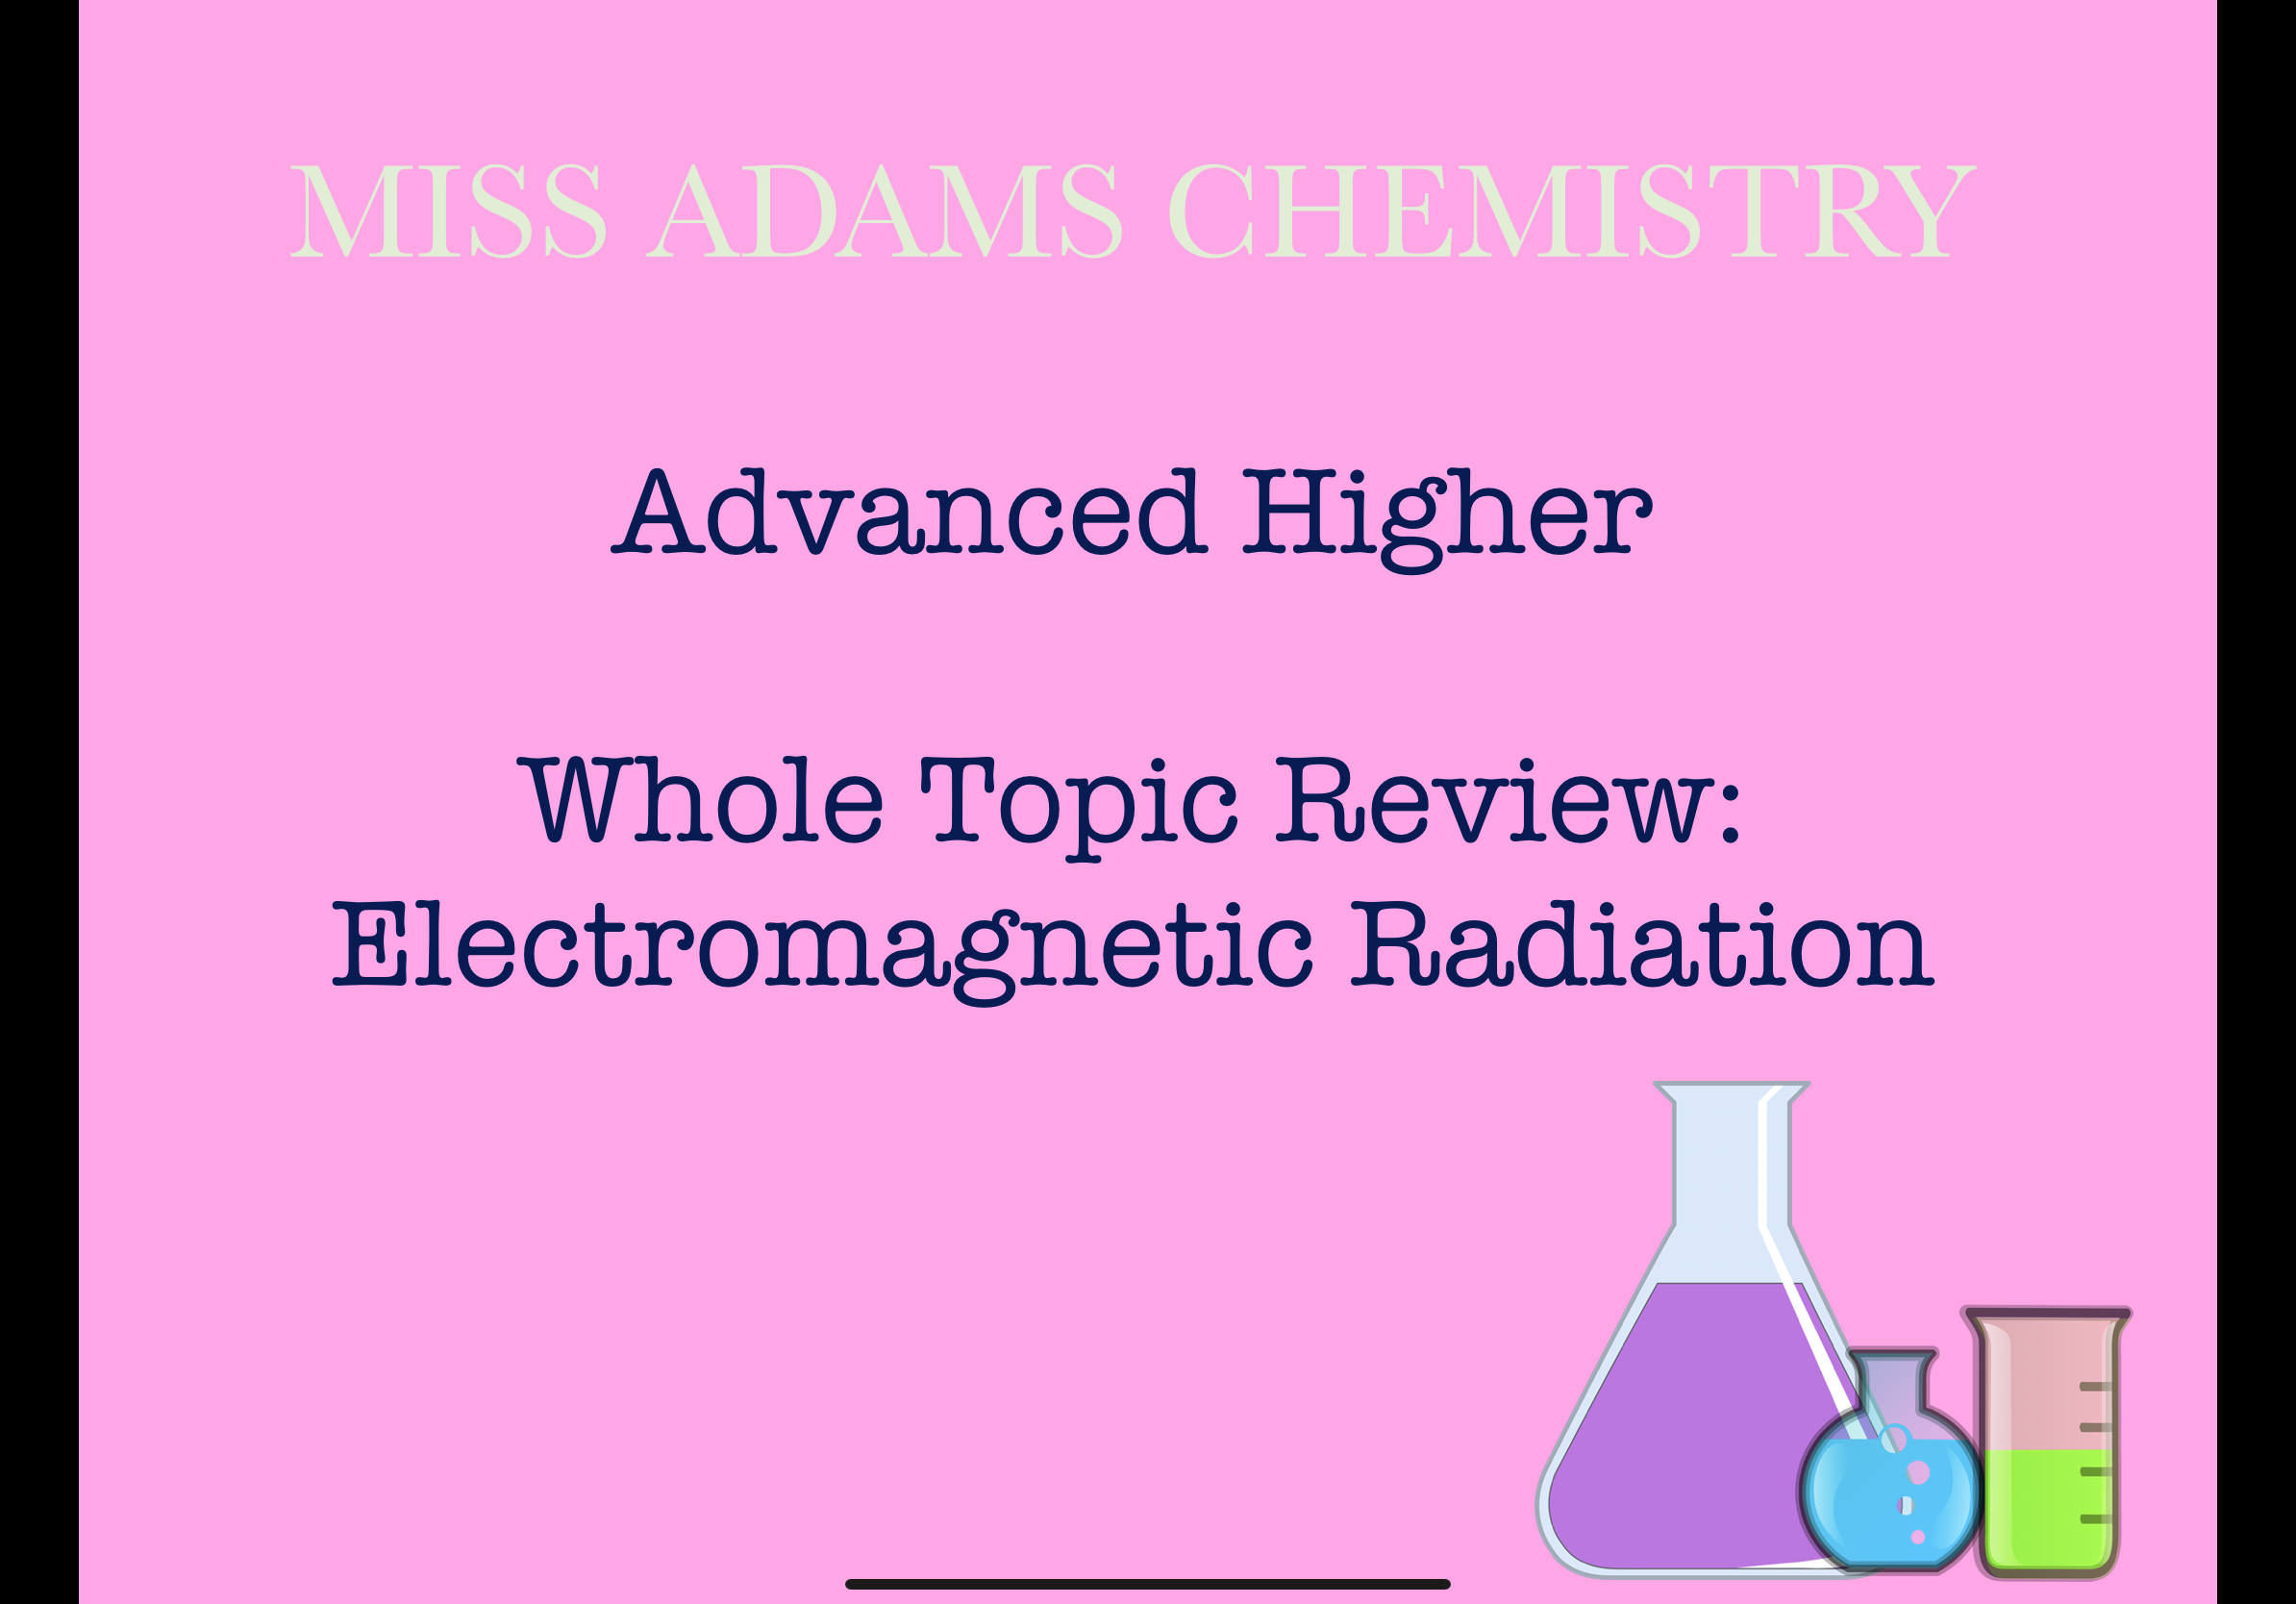 image from Electromagnetic Radiation Whole Topic Review